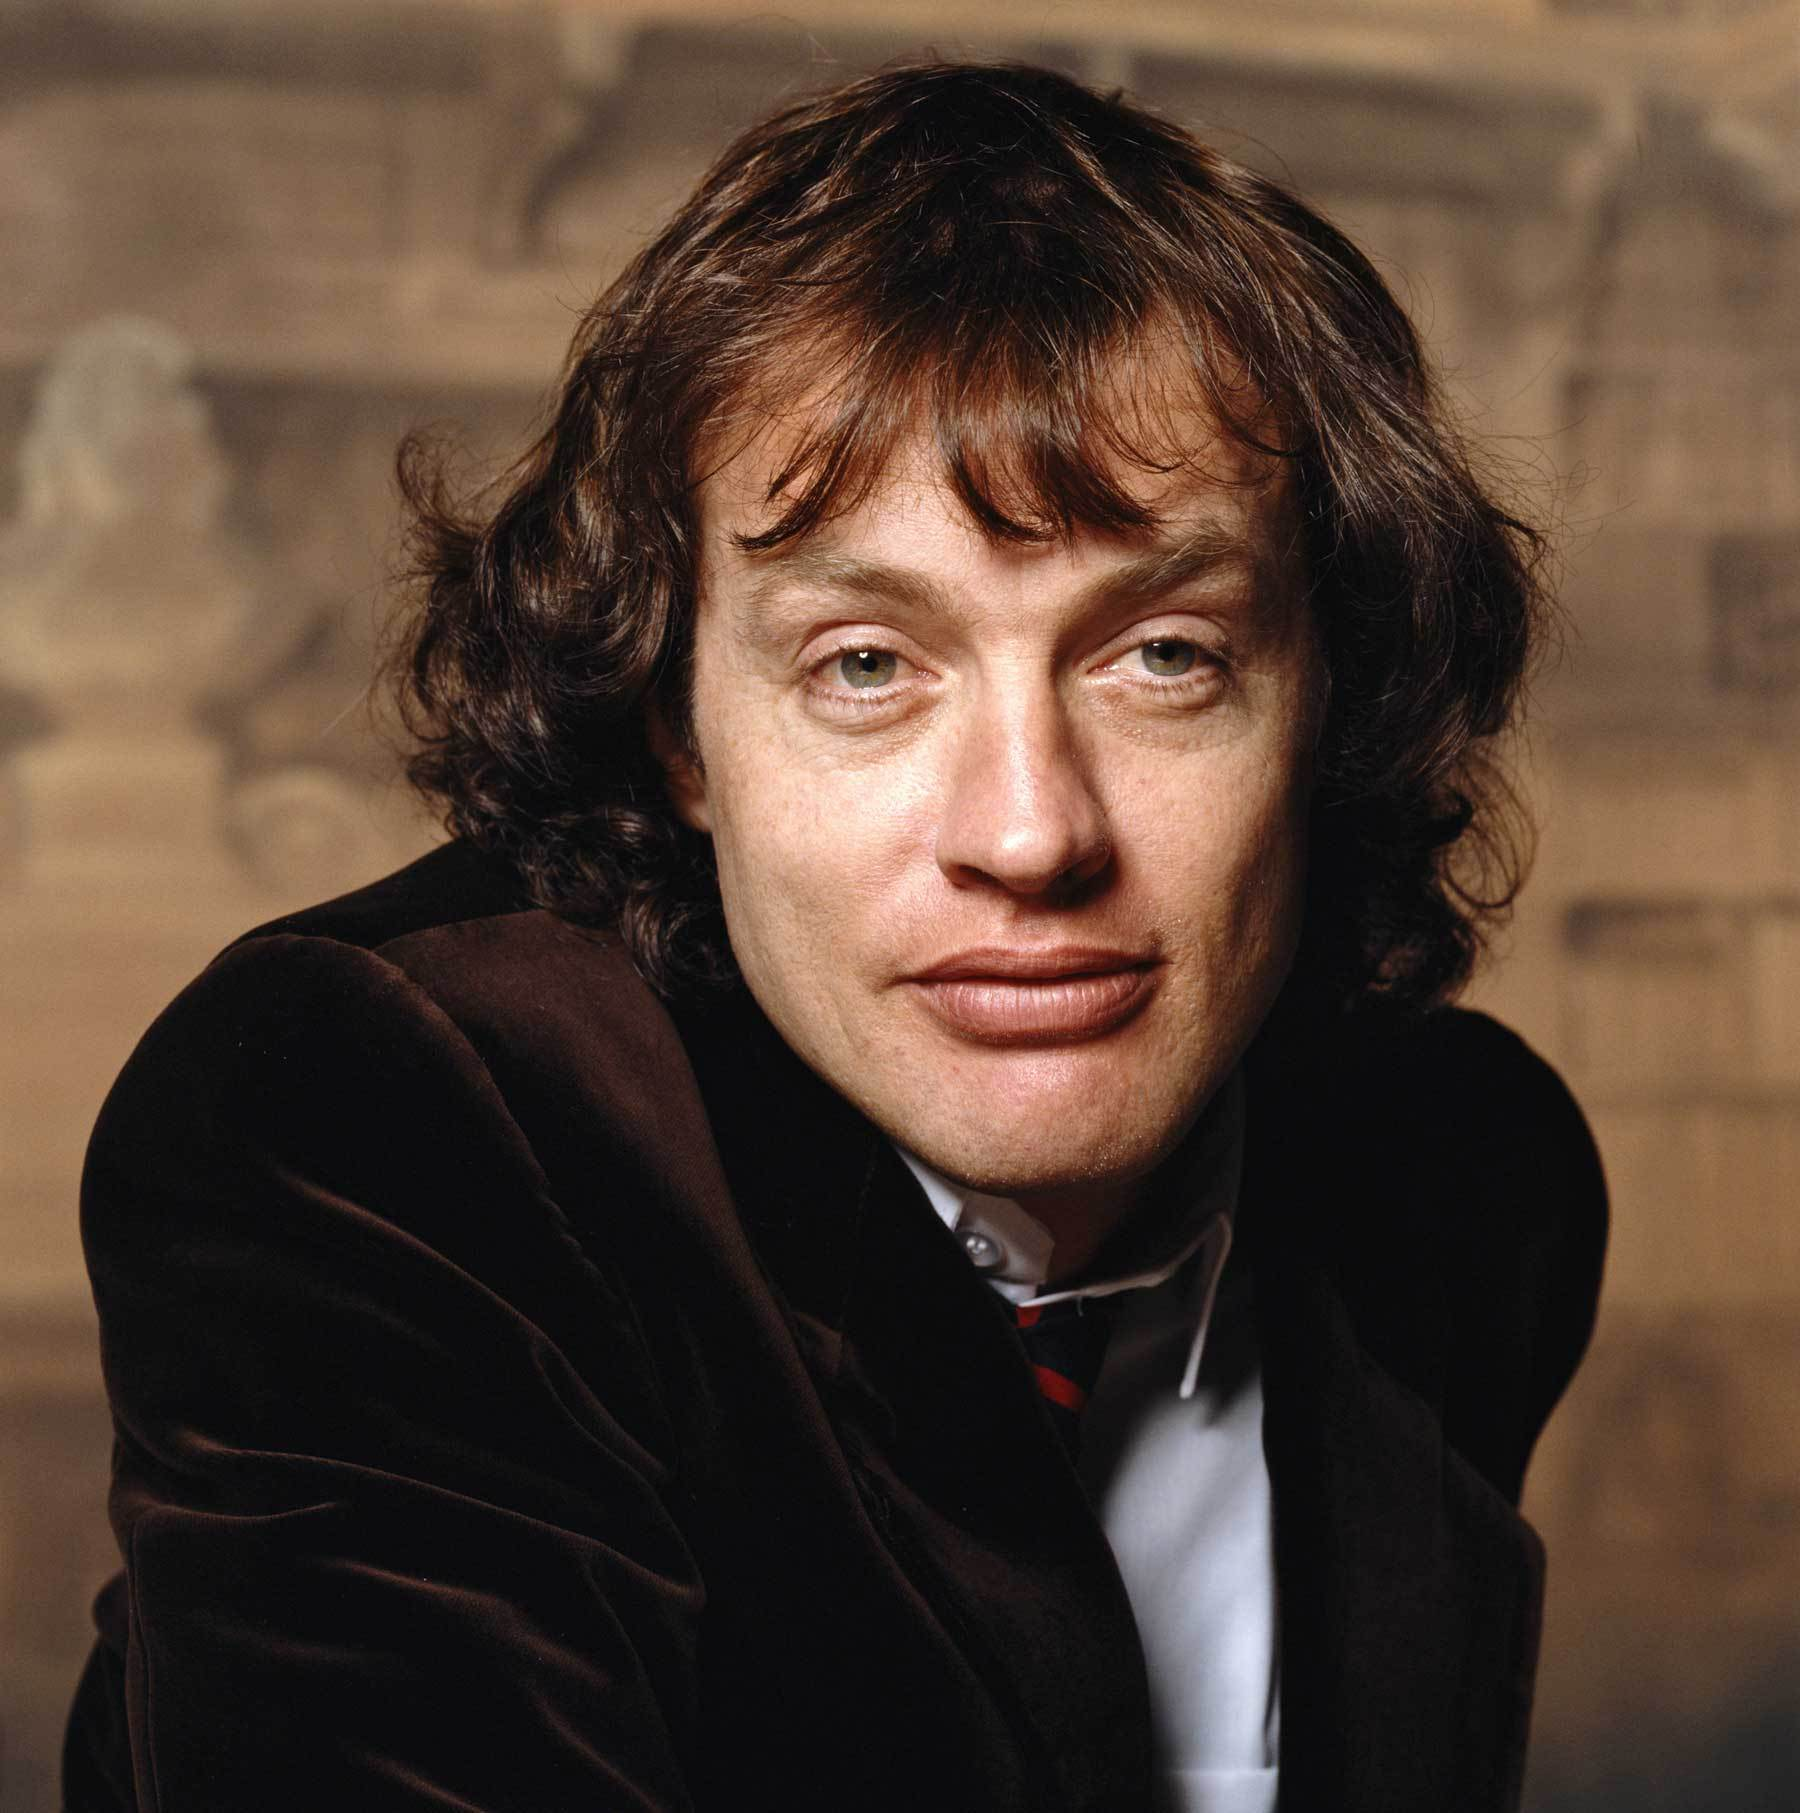 How tall is Angus Young?